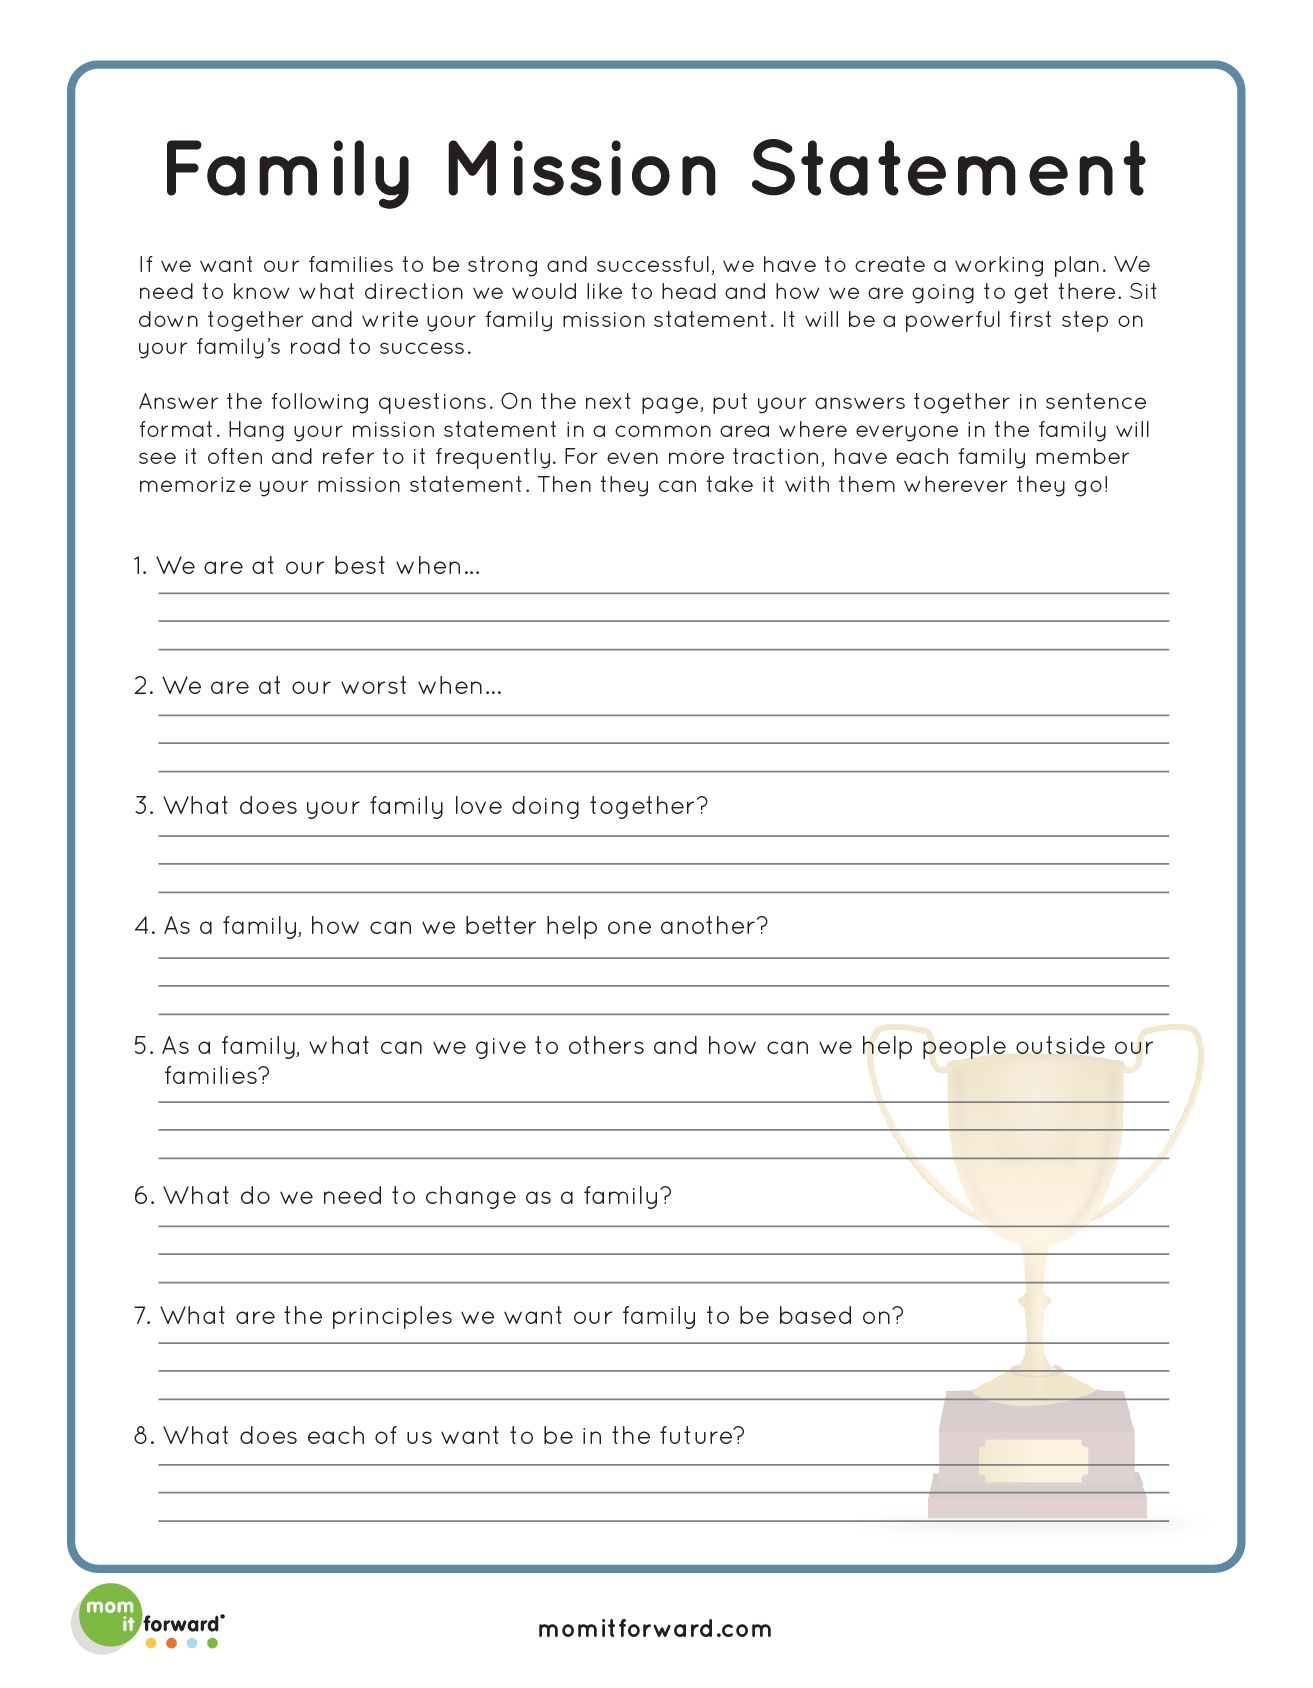 Family Mission Statement Writing Prompt Ideas